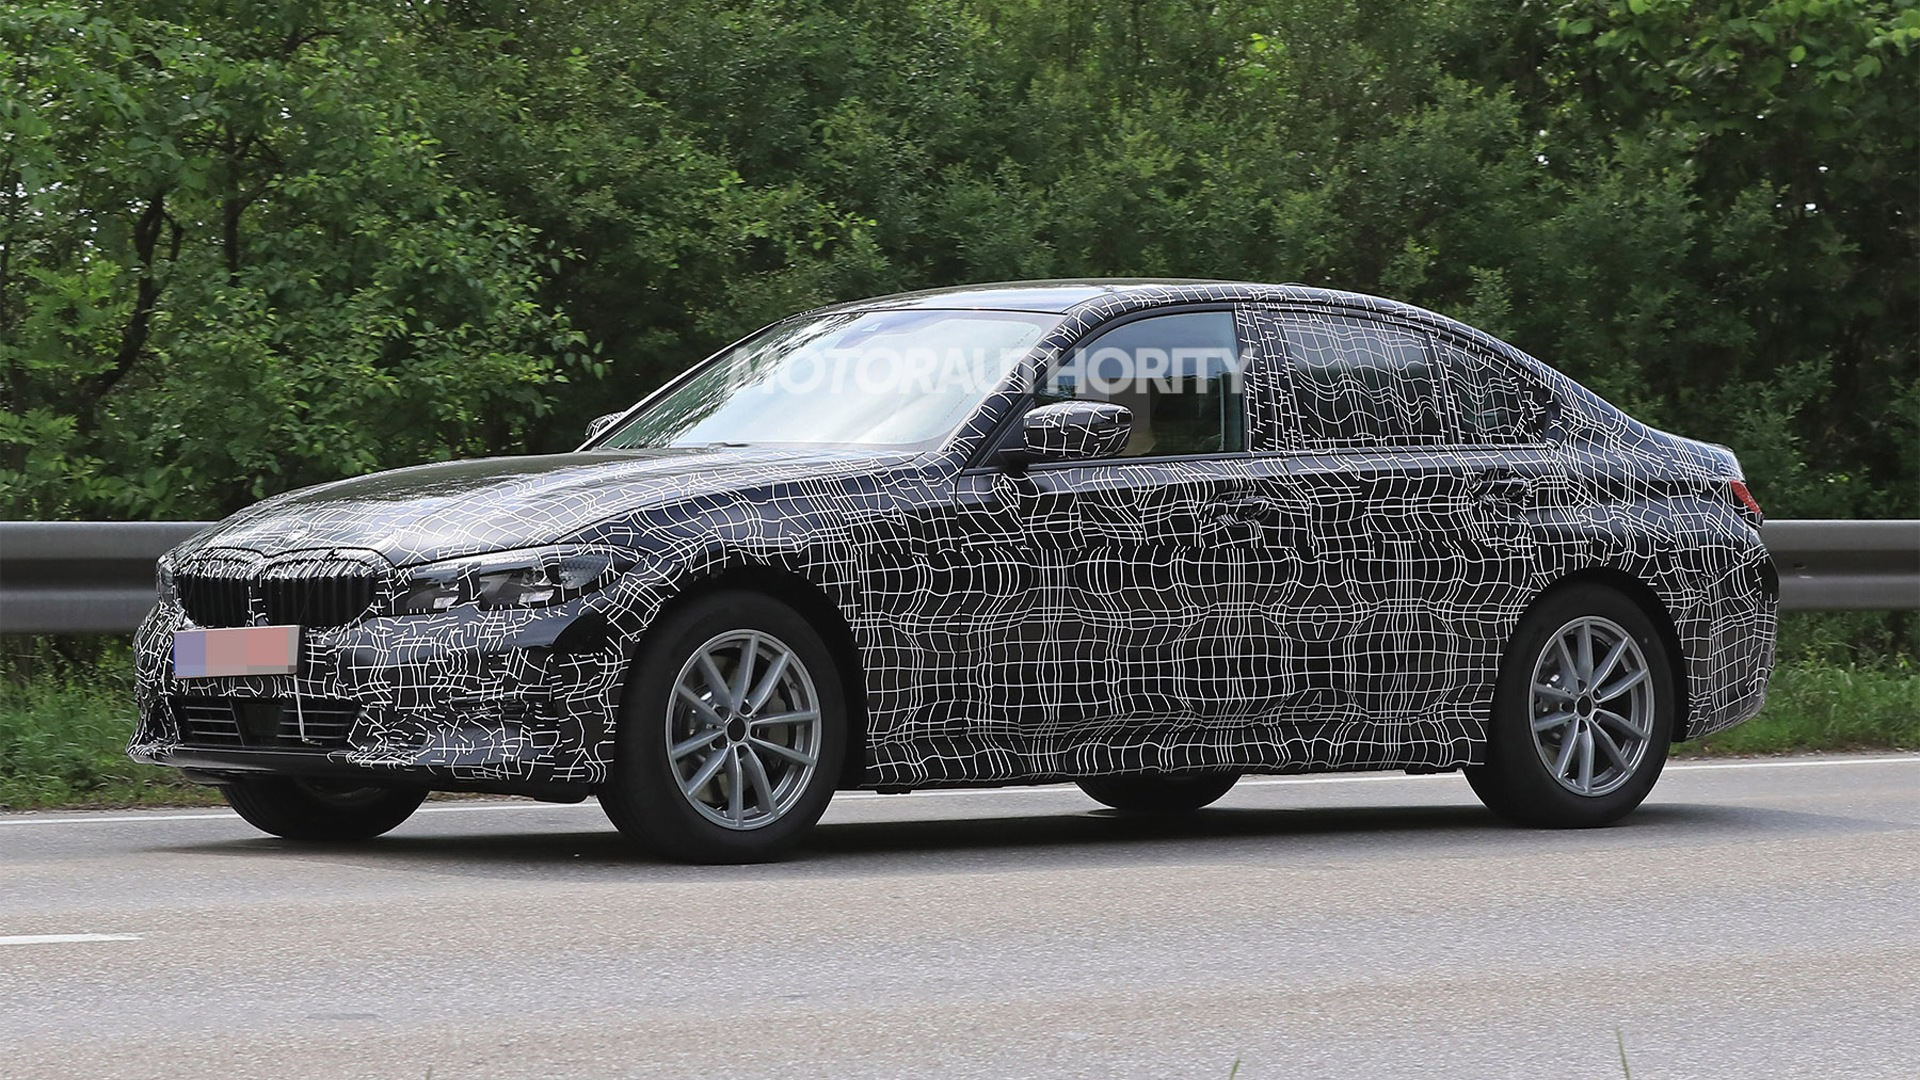 28 New 2020 Spy Shots BMW 3 Series Photos